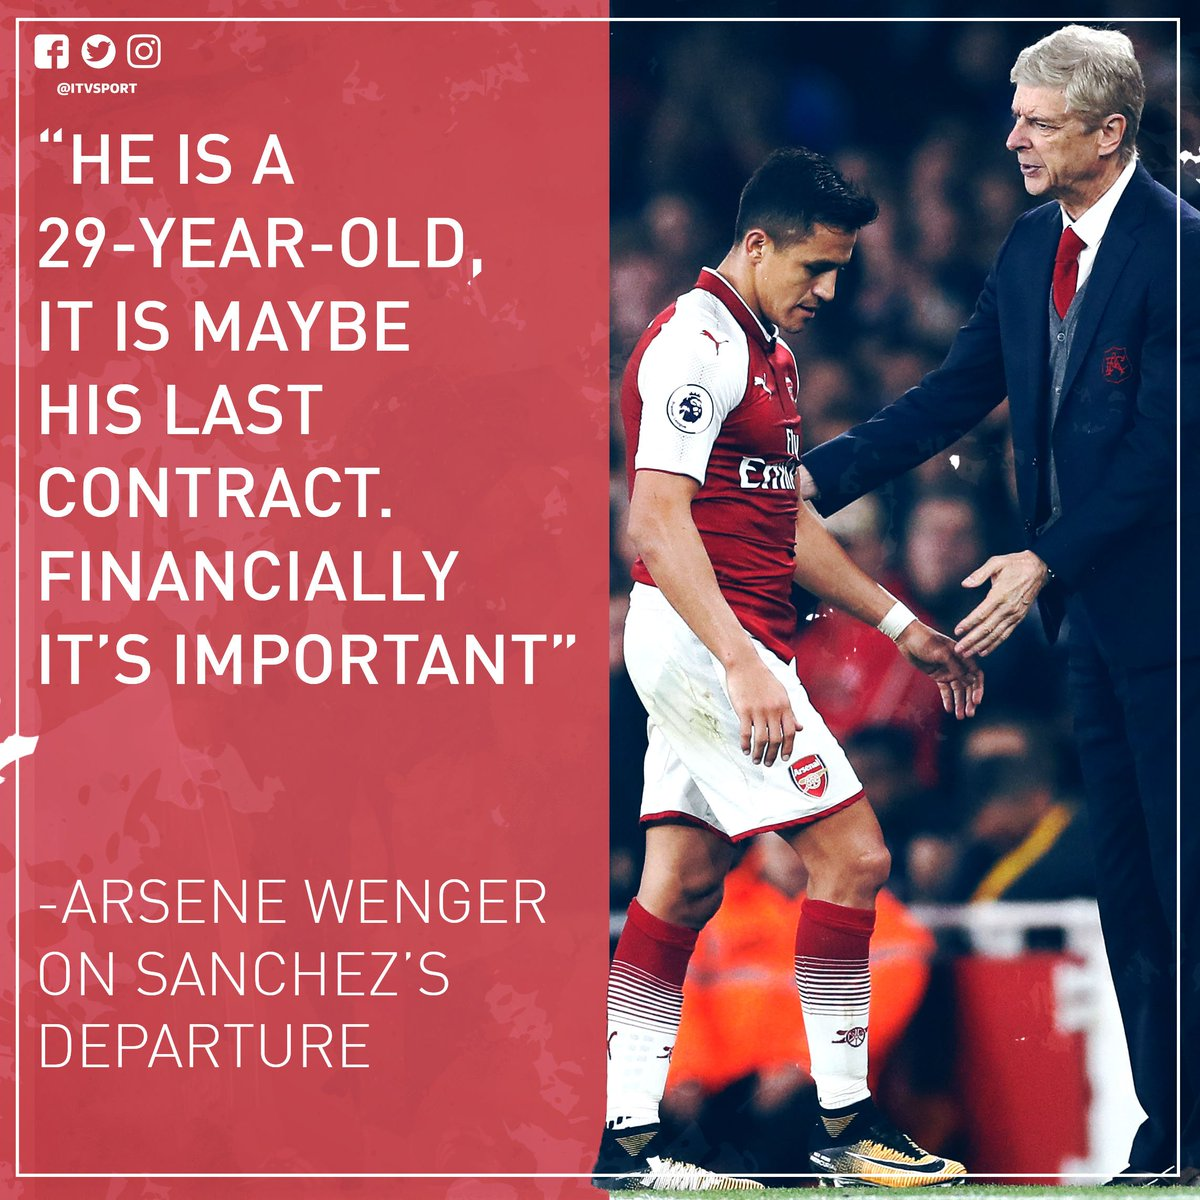 Arsene Wenger has been speaking about @Alexis_Sanchez's departure ahead of @Arsenal's game against @ChelseaFC |